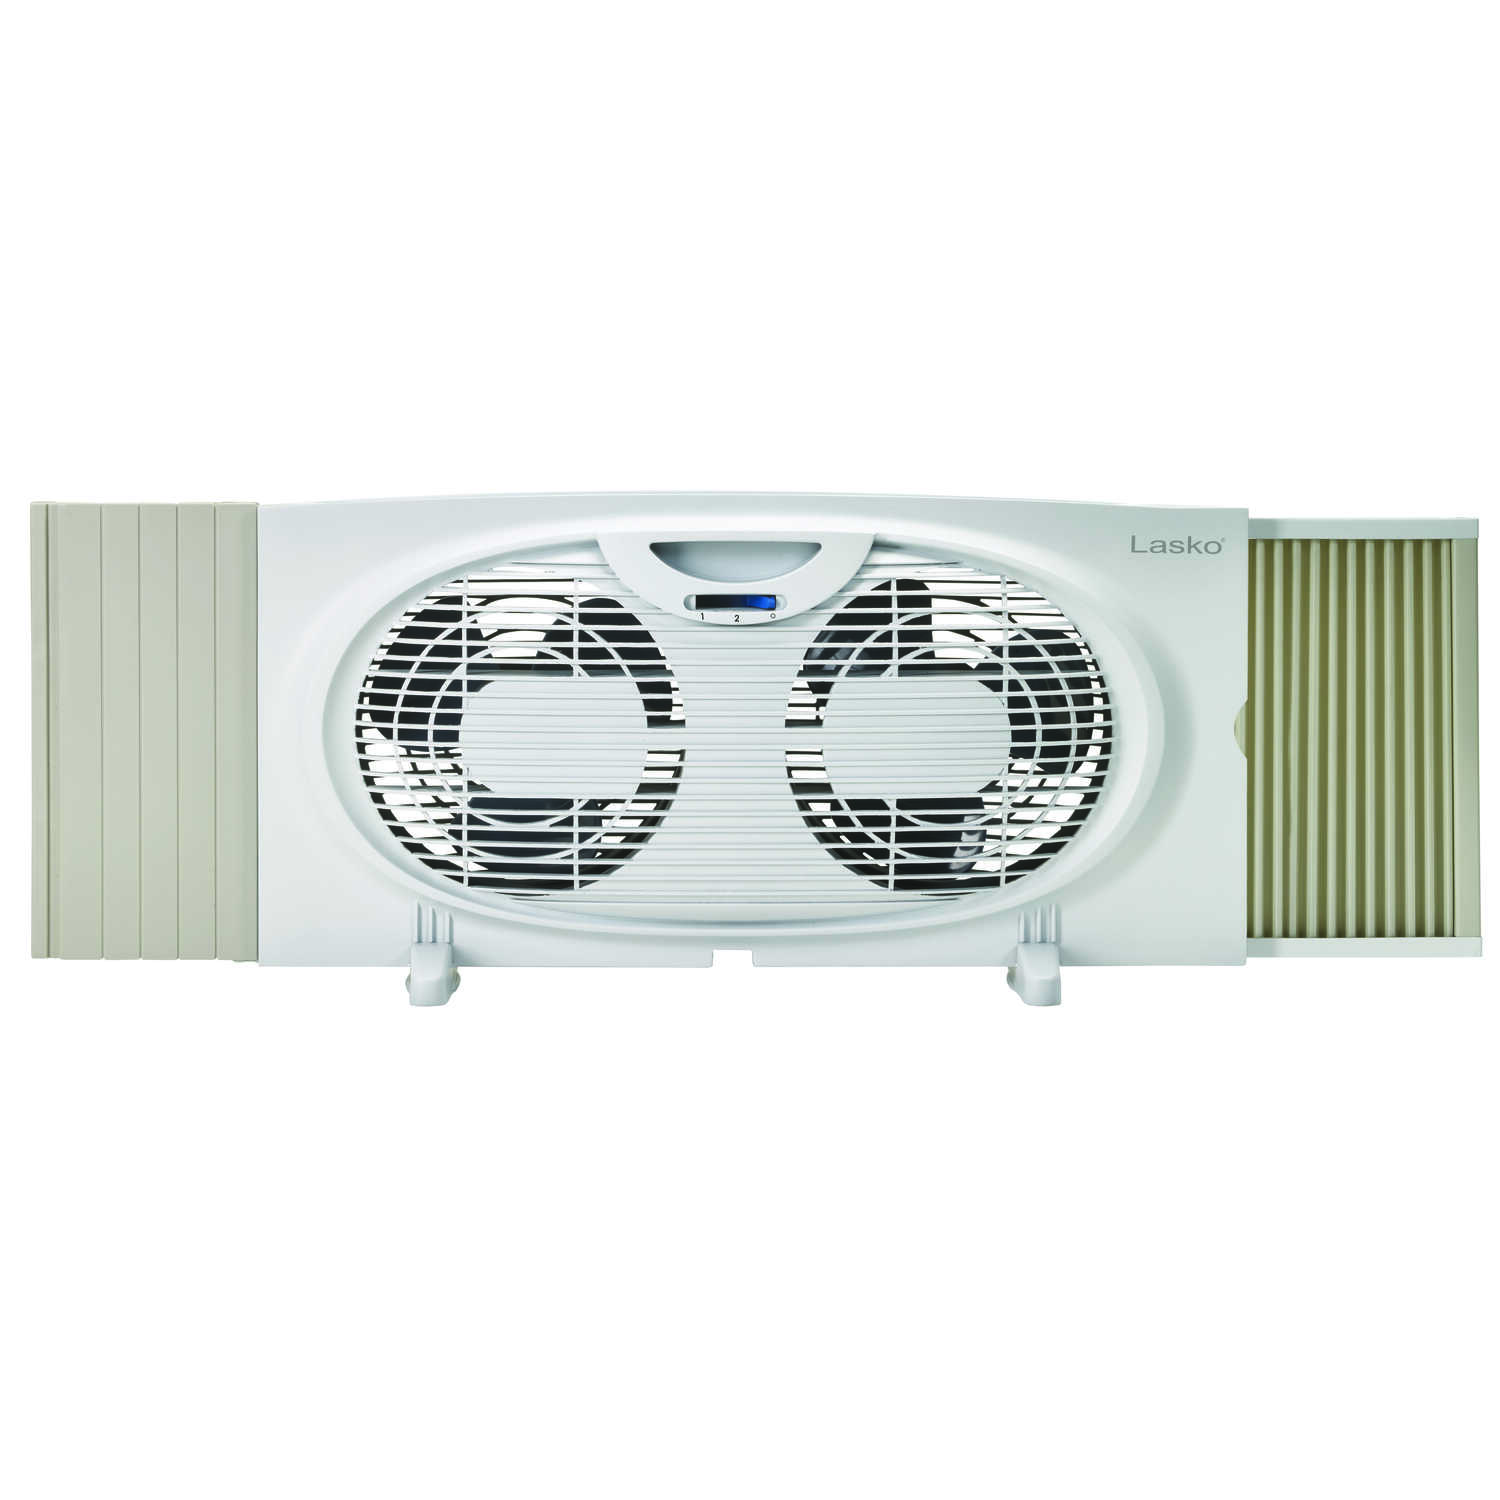 Lasko  7 in. 3 speed Electric  Twin Window Fan